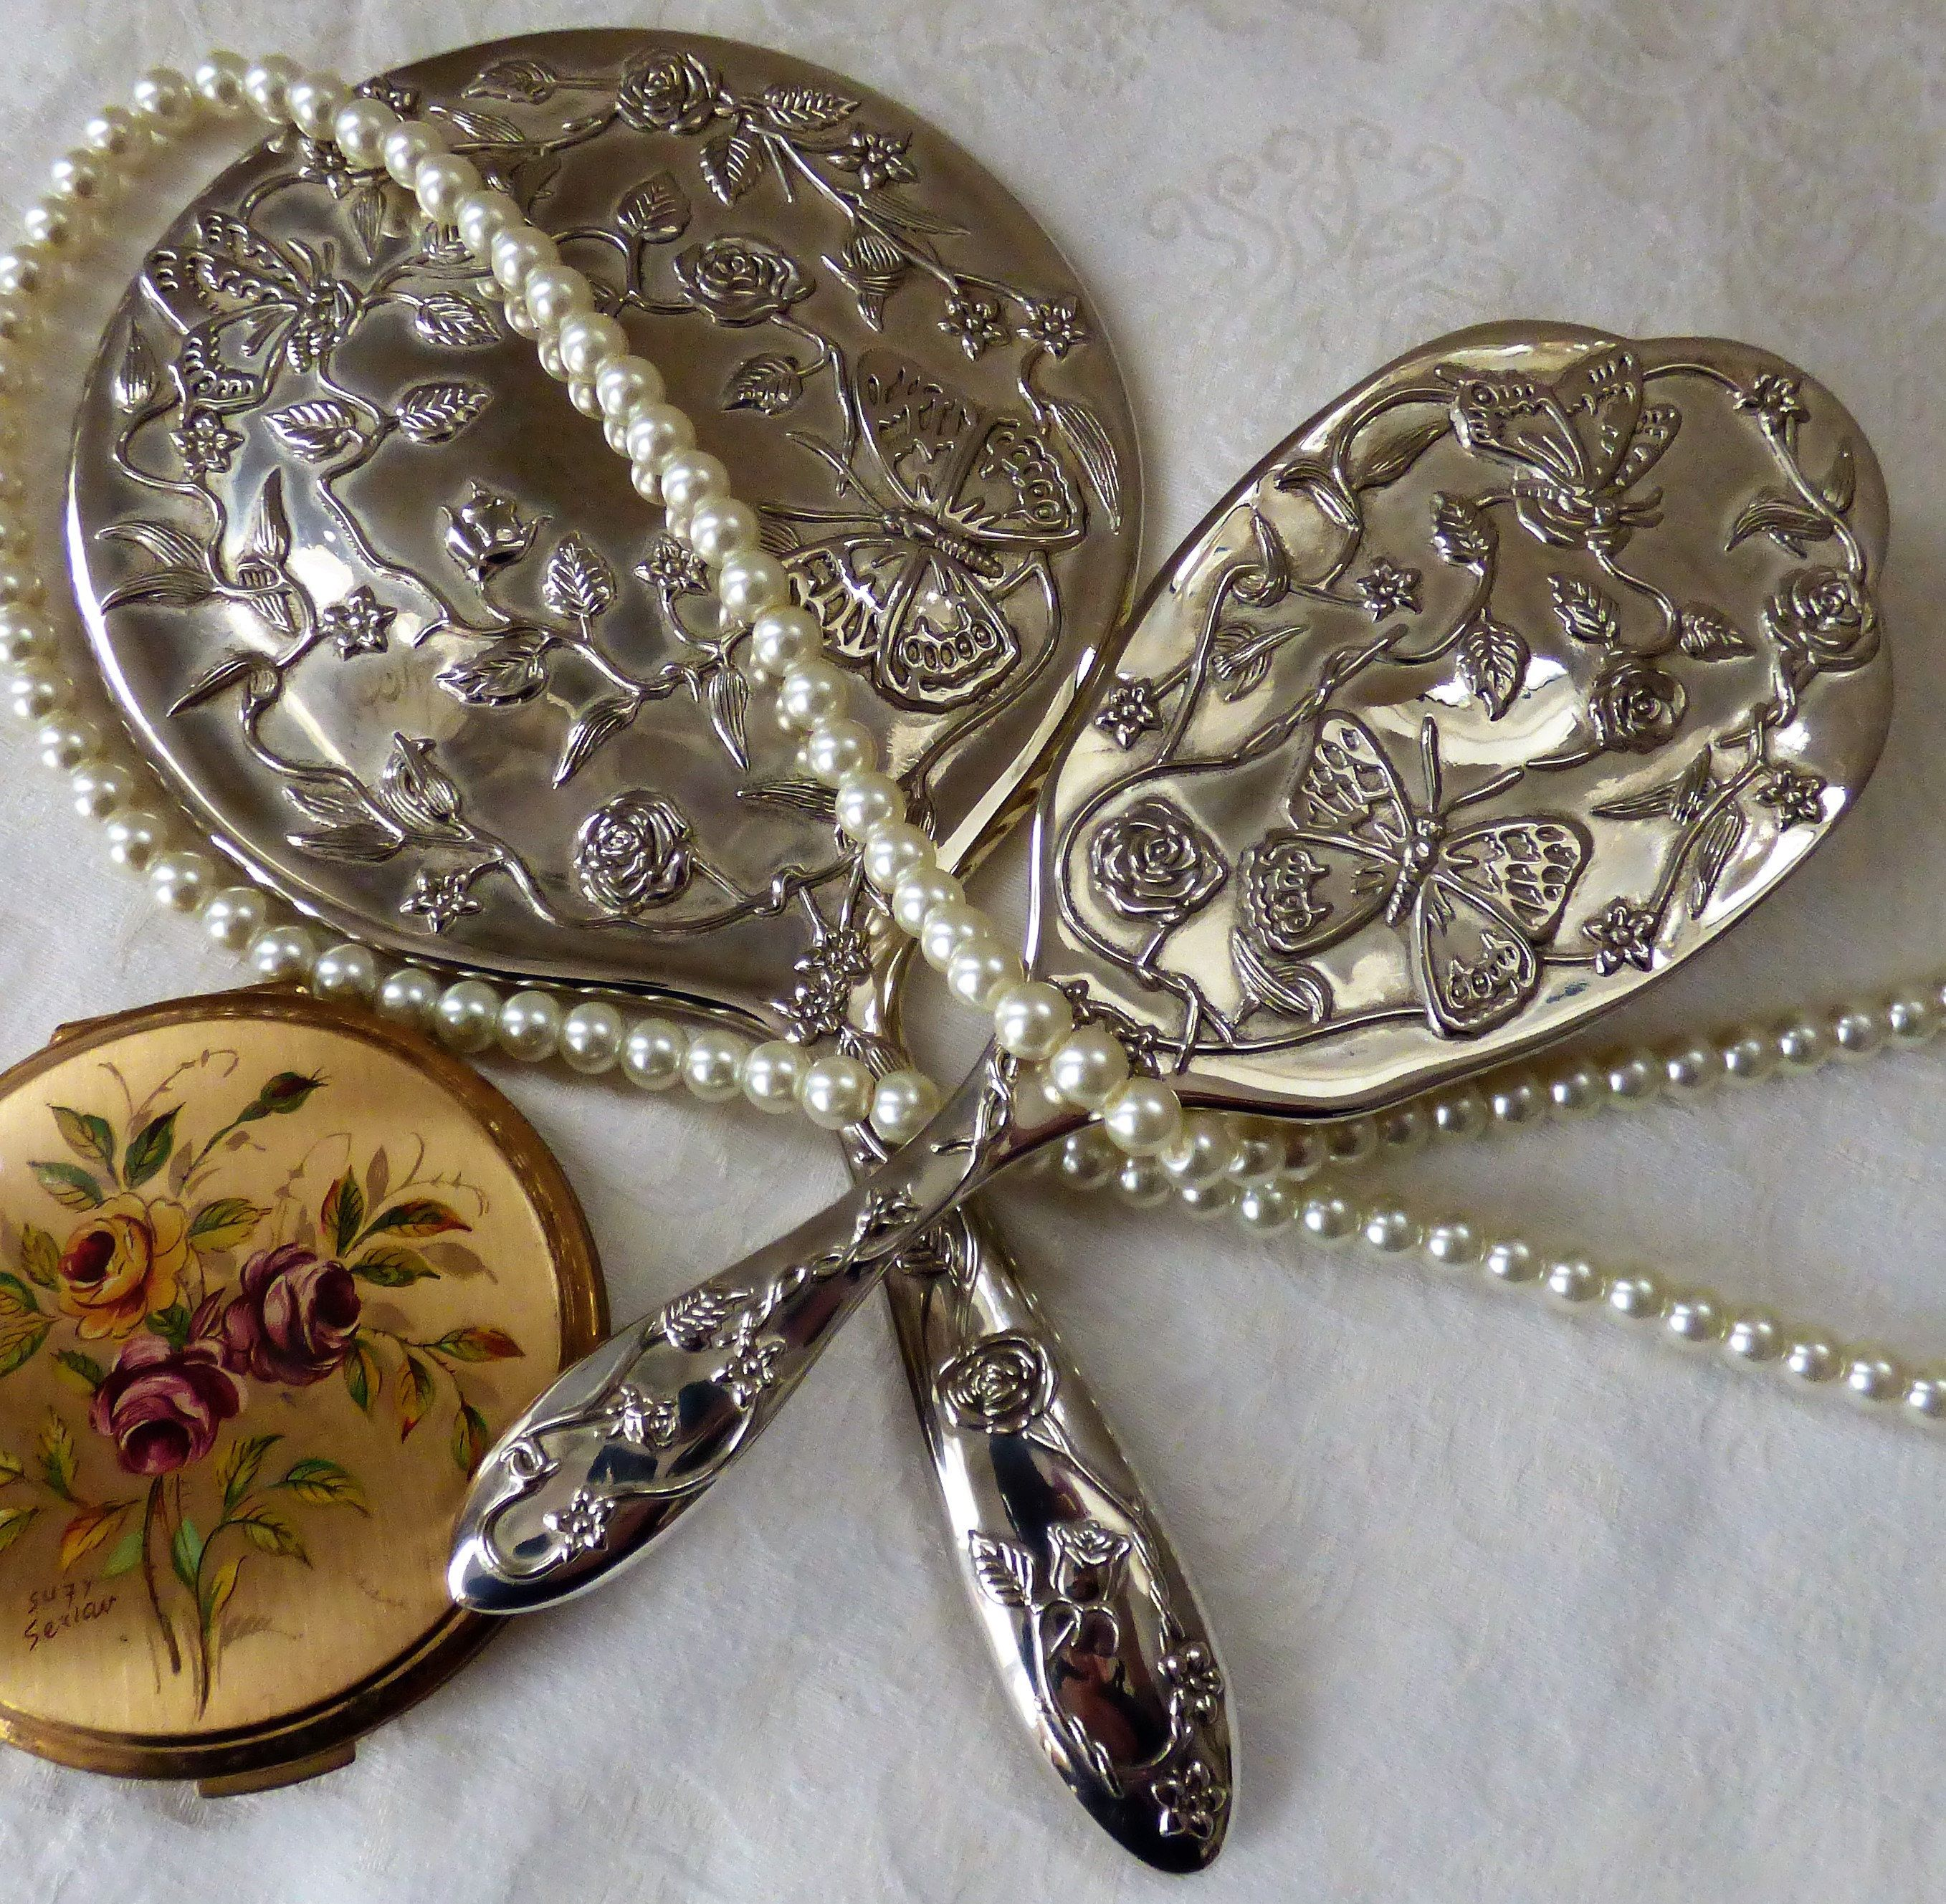 A superb vintage two piece silver plated vanity set decorated with butterflies and entwining roses Such a lovely gift. & A superb vintage two piece silver plated vanity set decorated with ...